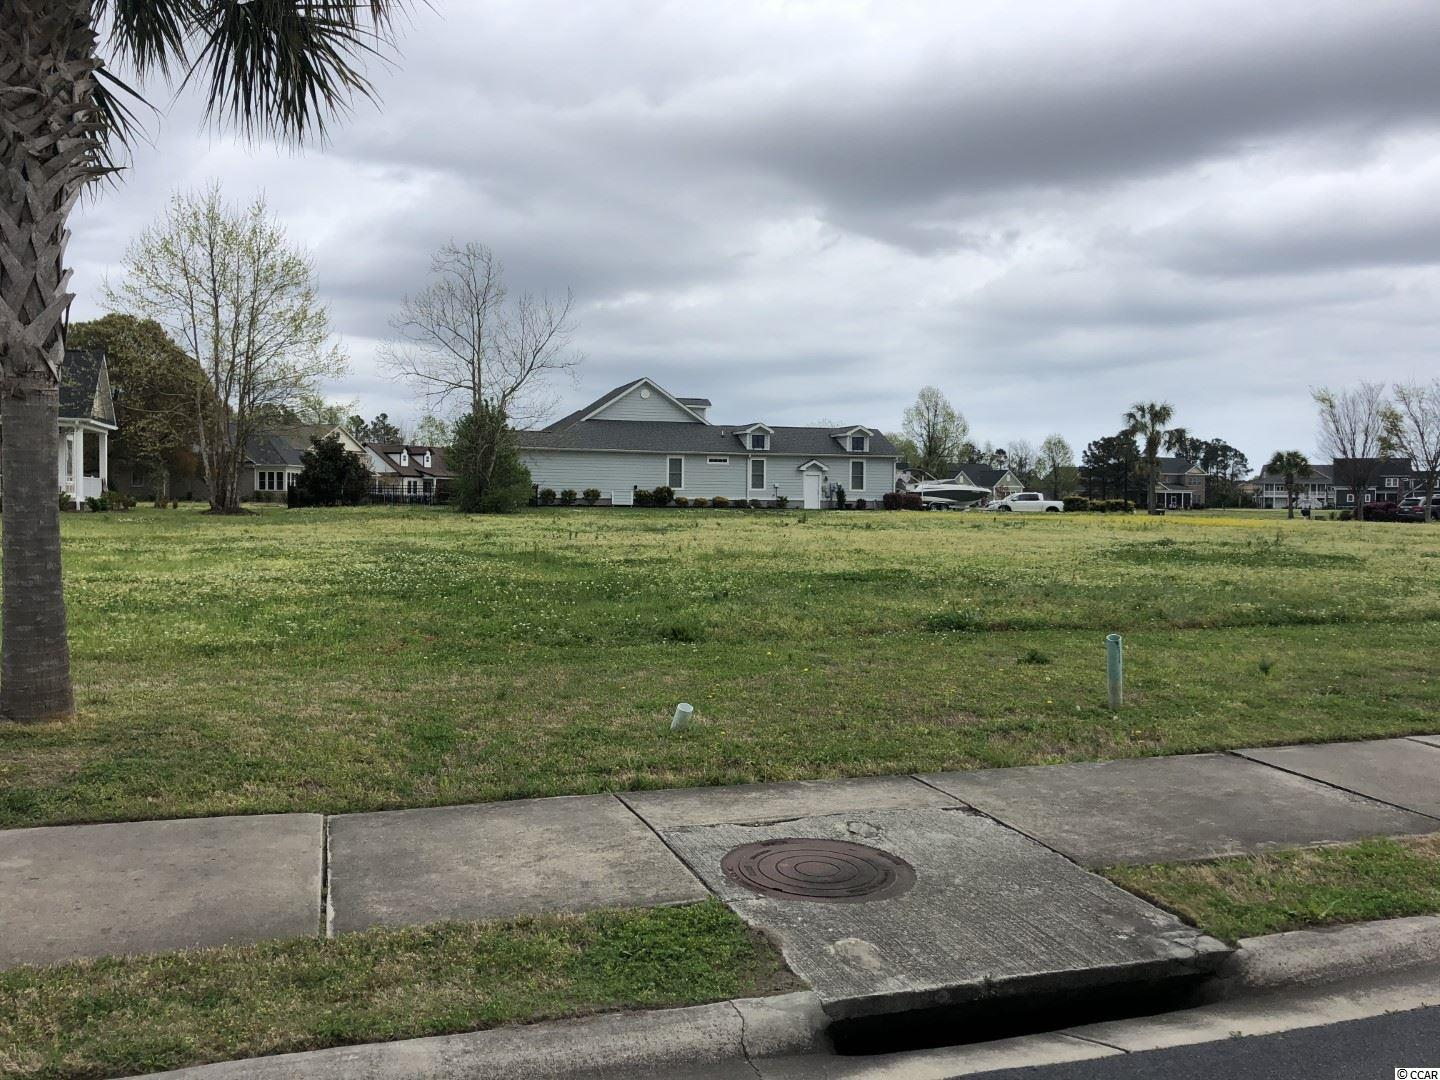 Rare square shaped lot in this section of Waterway Palms, cleared and allows for a larger single level or 2 level home. Convenient access to the community boat dock/waterway access and the entrance. Located in a highly sought after Intracoastal Waterway Community, this new community is in the heart of Carolina Forest, Myrtle Beach.